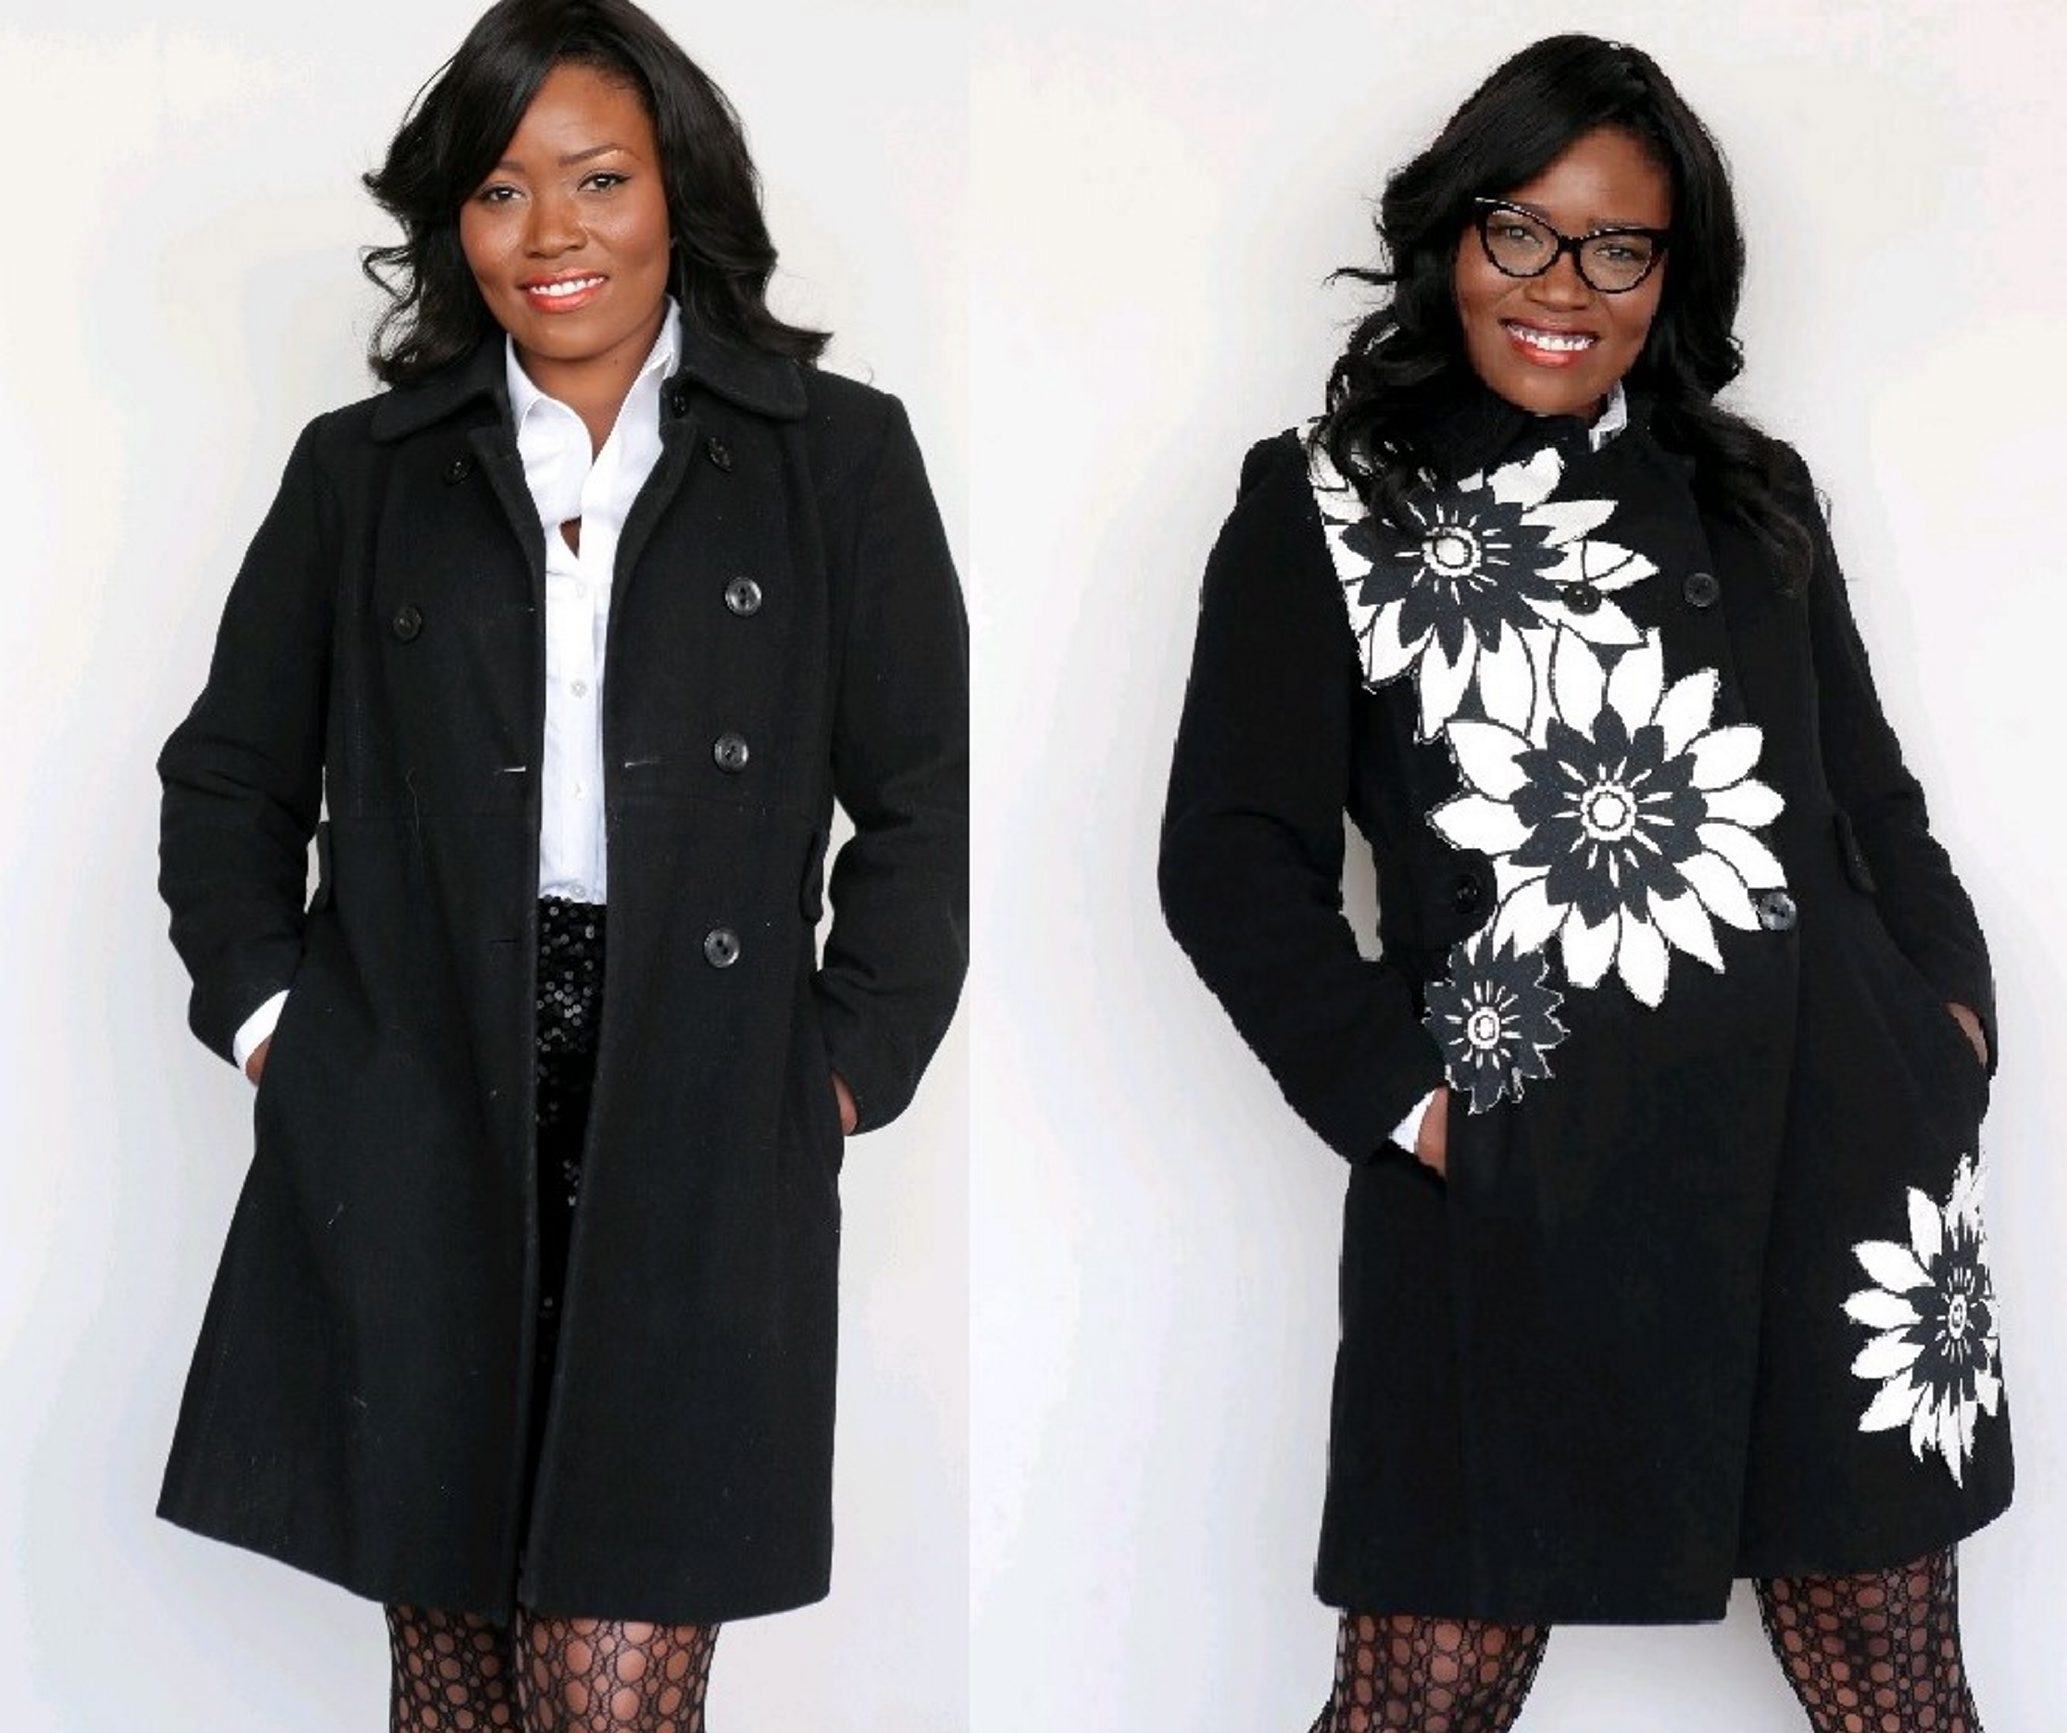 A plain winter coat gets a floral transformation using upholstery fabric. (McClatchy Newspapers)